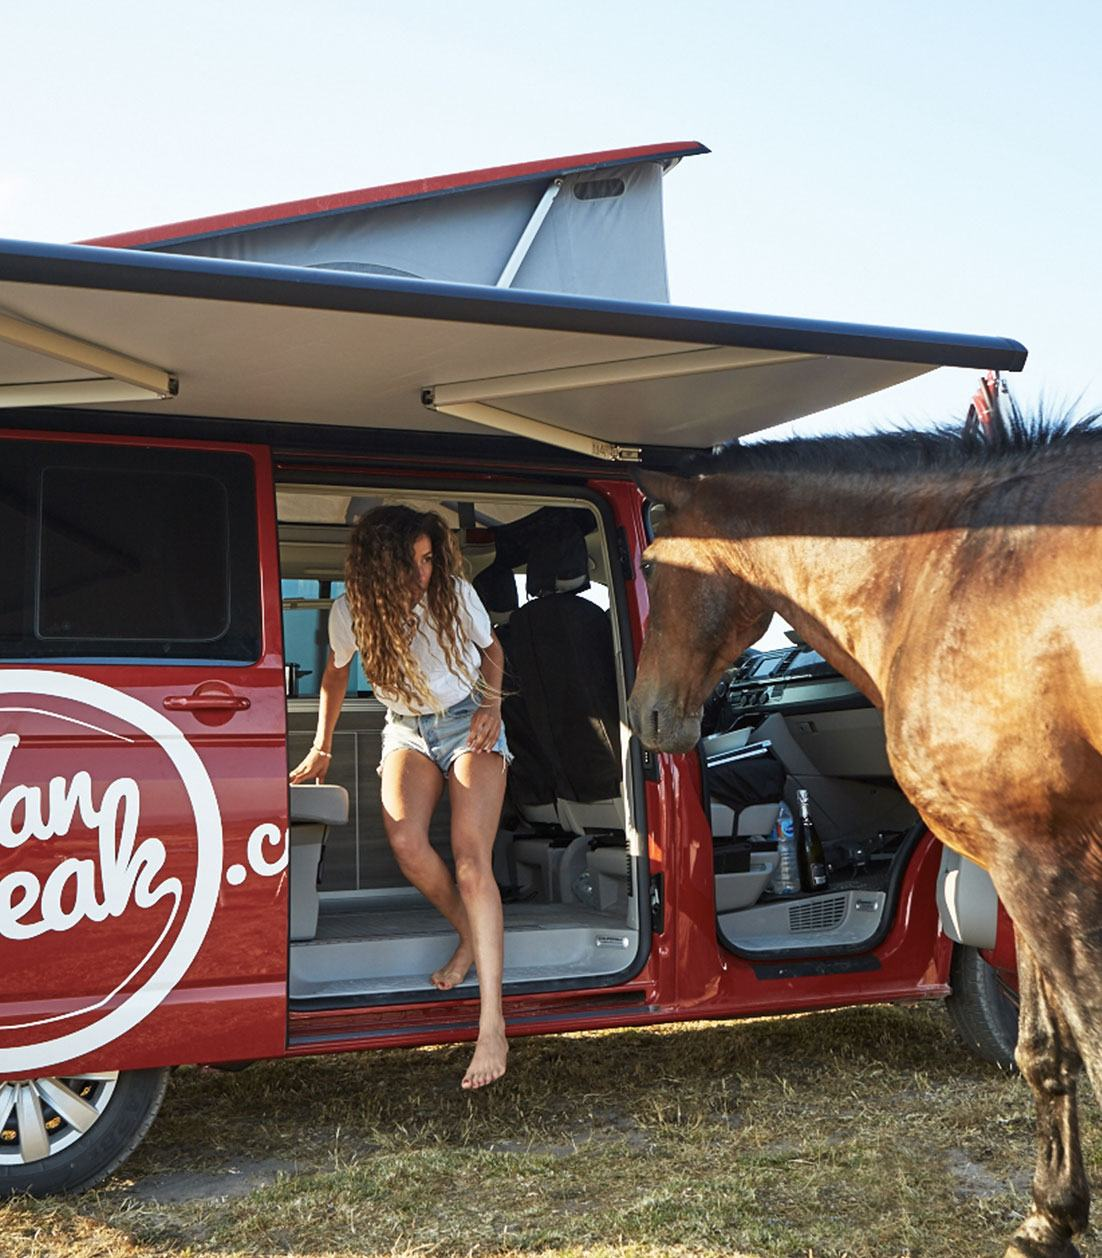 Woman stepping out of a red campervan in front of a horse